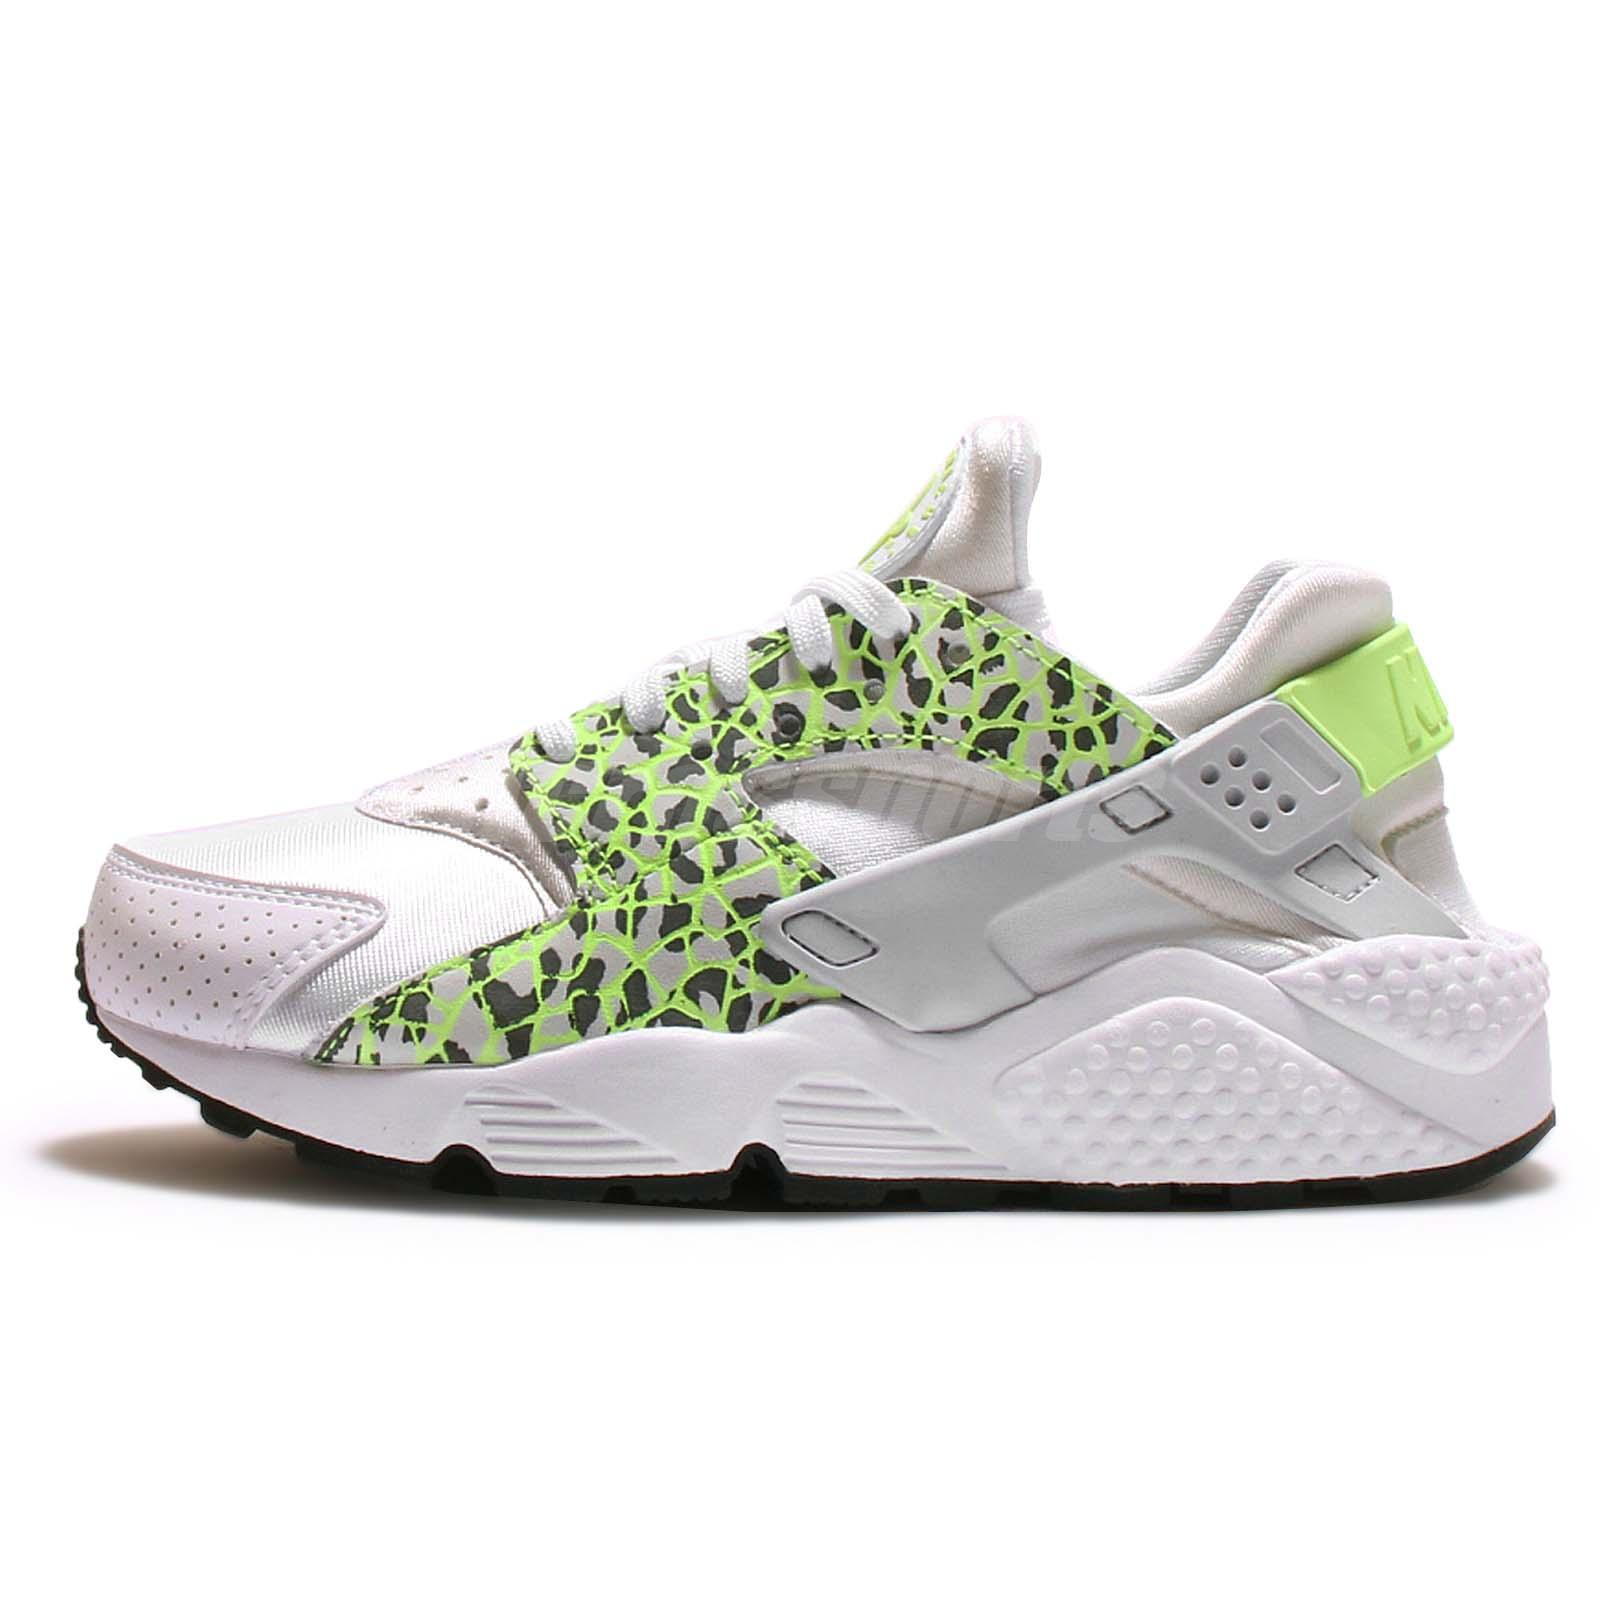 Wmns Nike Air Huarache Run PRM Premium White Green Women Running 683818101